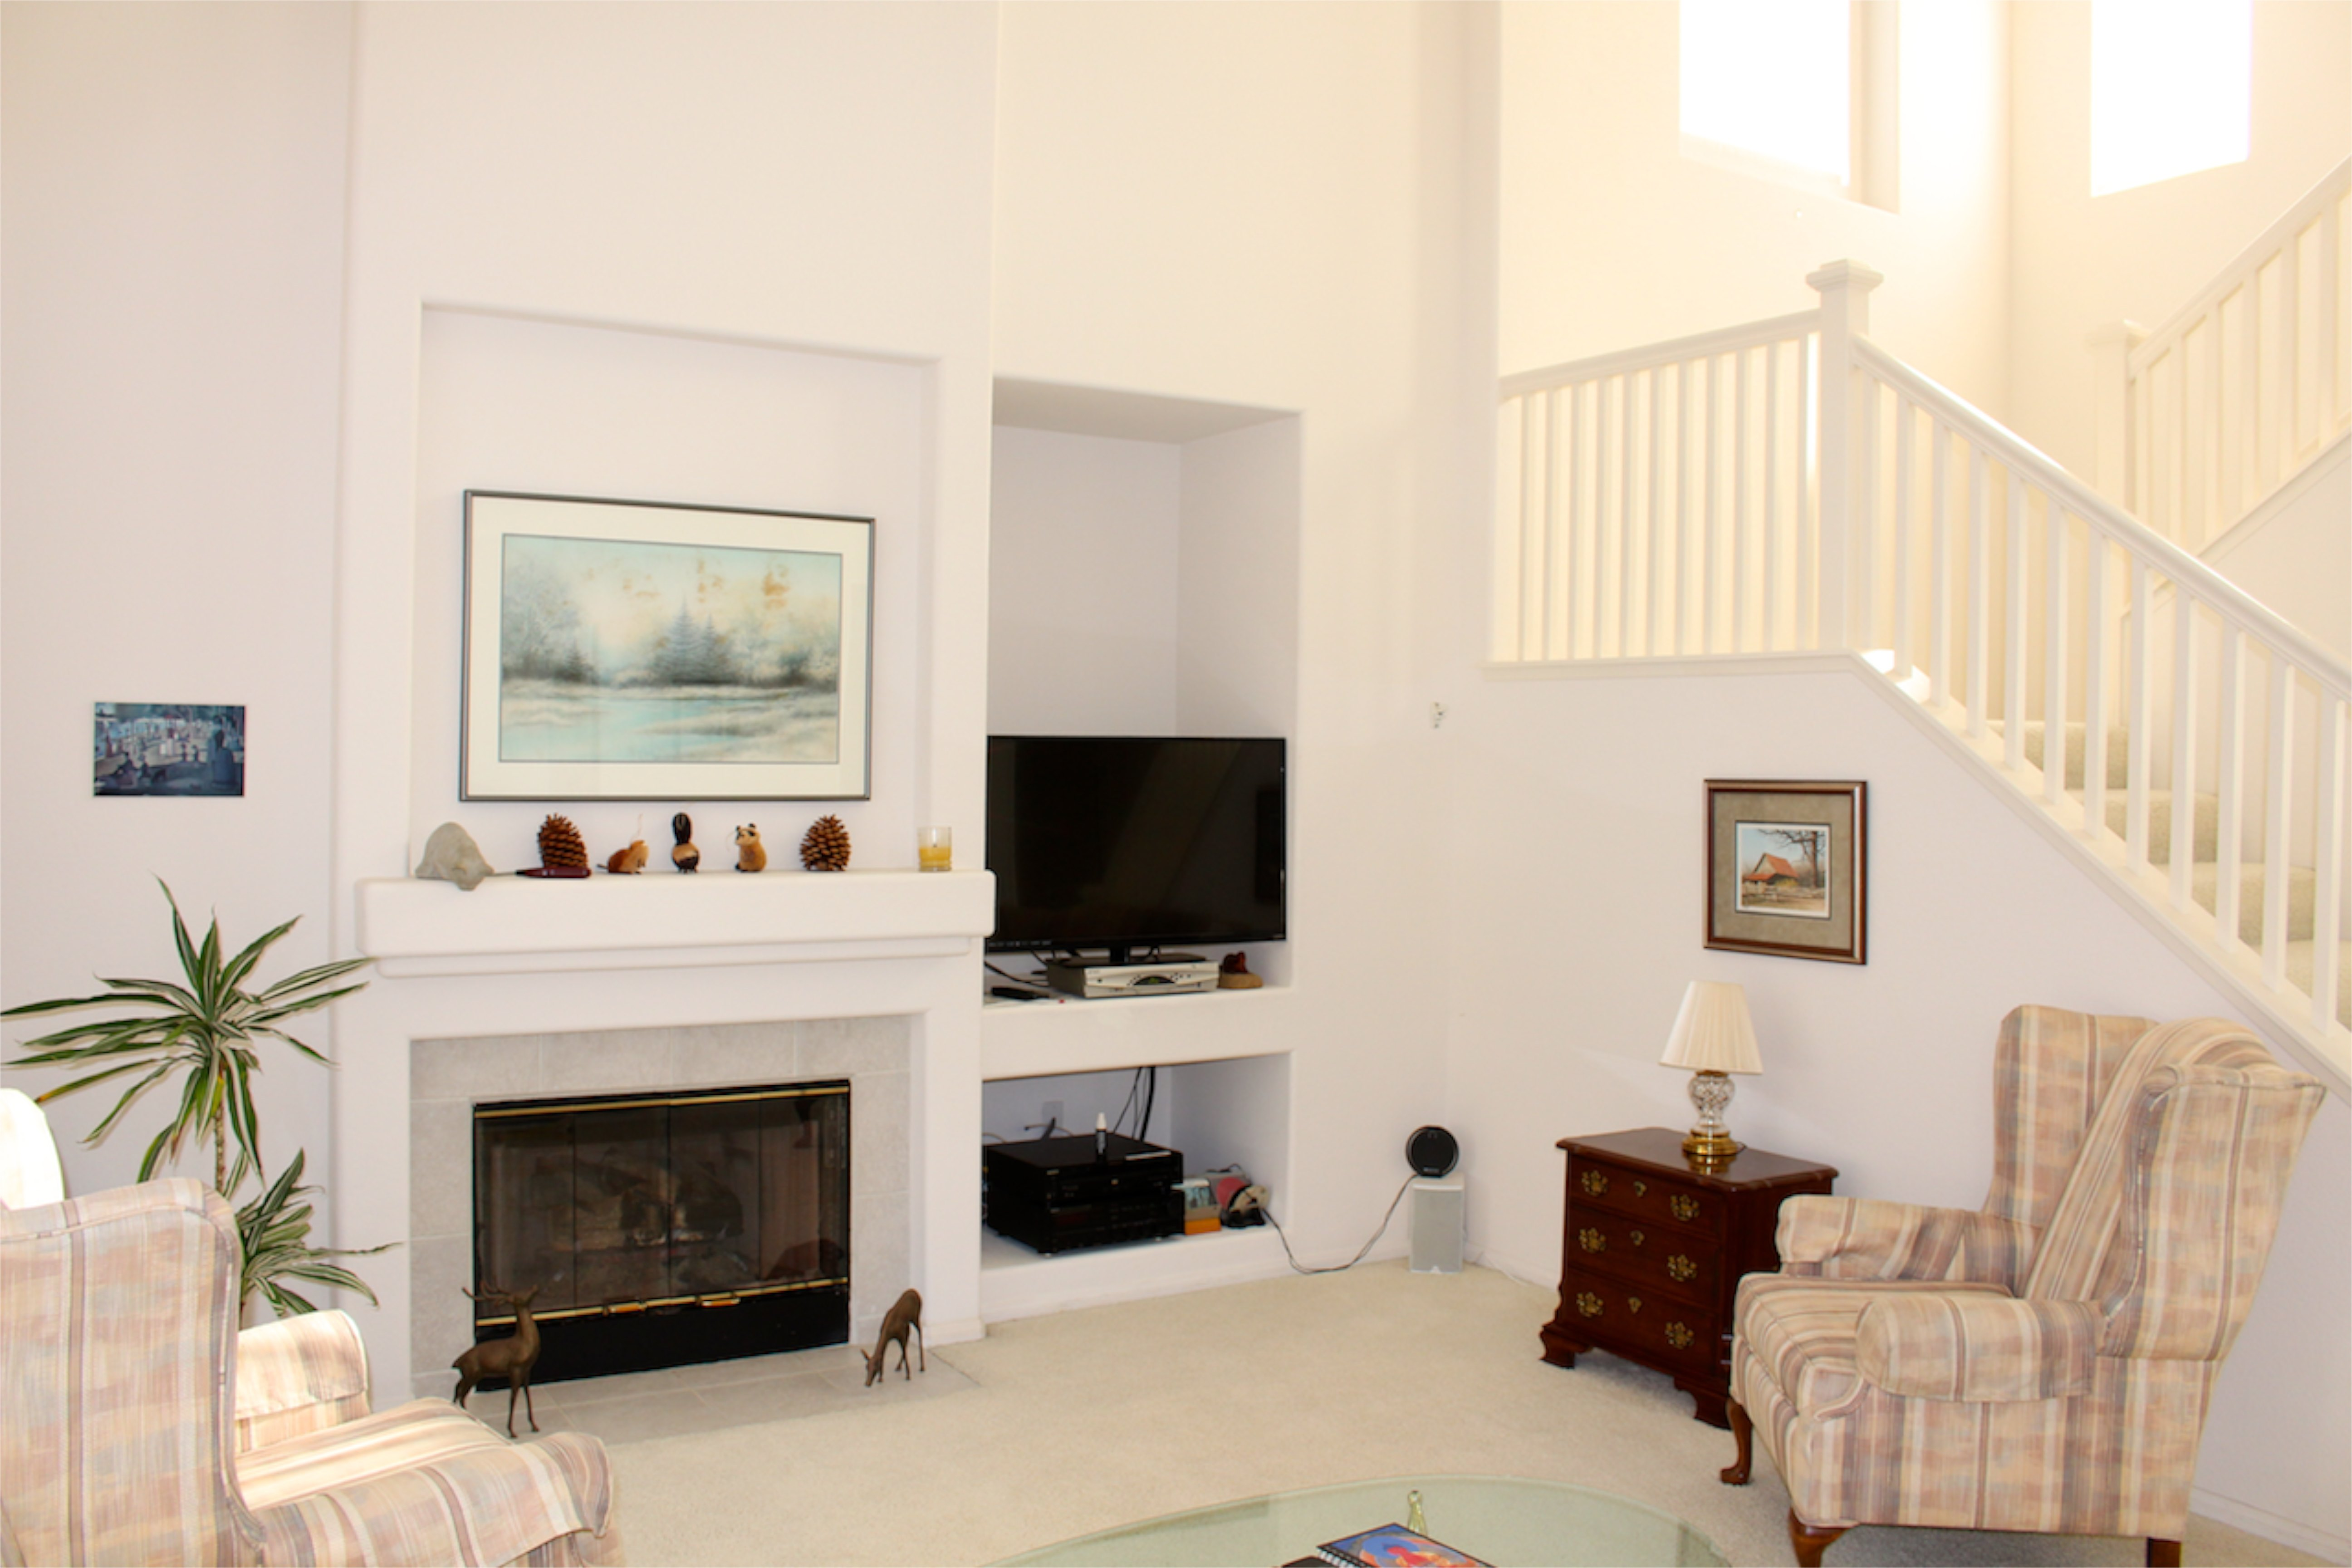 FOR RENT - 3BR/2.5BA 1818 SF Furnished Very Charming 3 Level ...